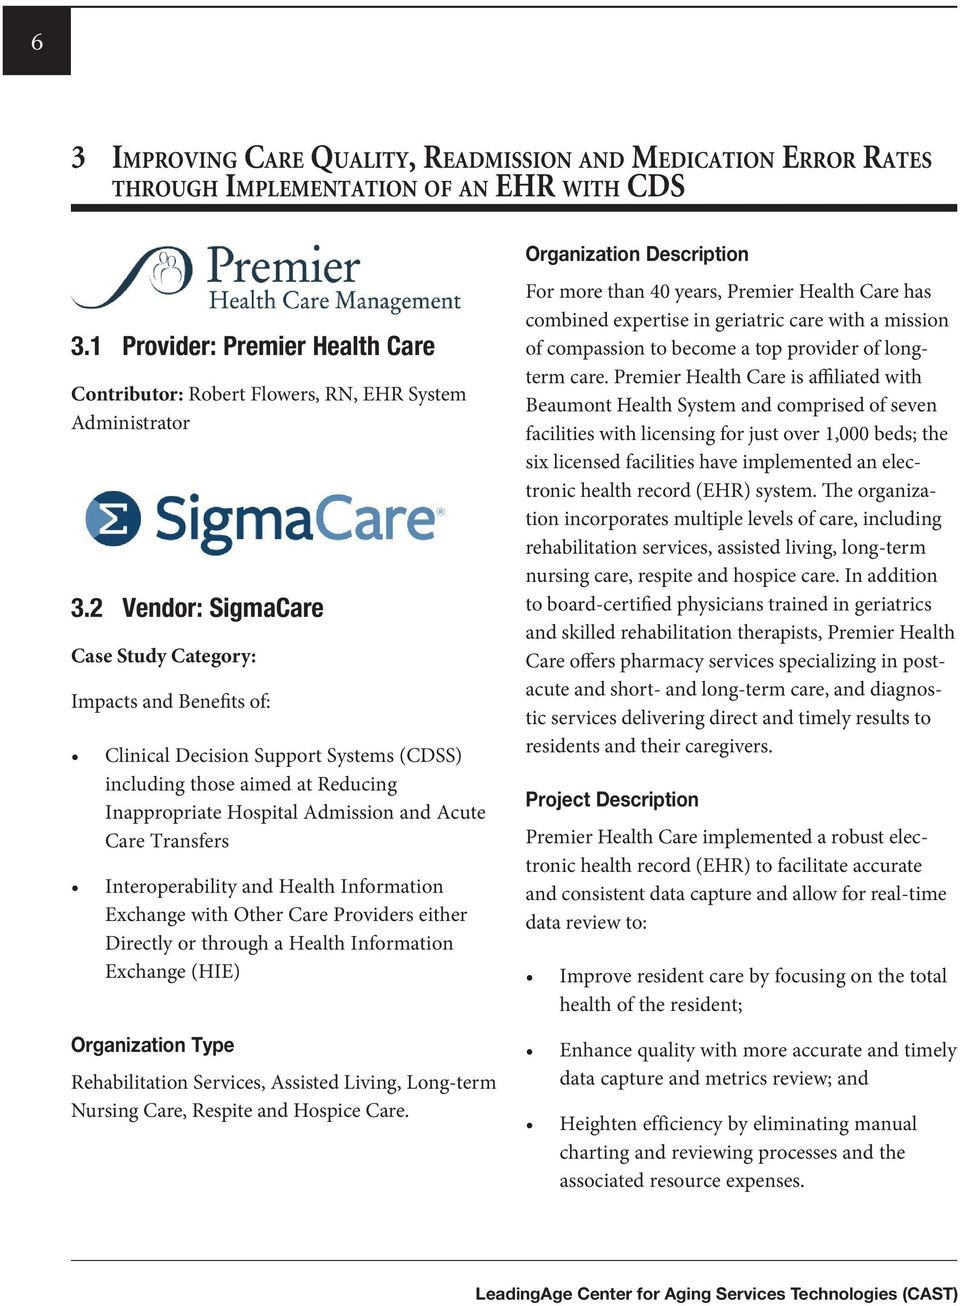 2 Vendor: SigmaCare Case Study Category: Impacts and Benefits of: Clinical Decision Support Systems (CDSS) including those aimed at Reducing Inappropriate Hospital Admission and Acute Care Transfers